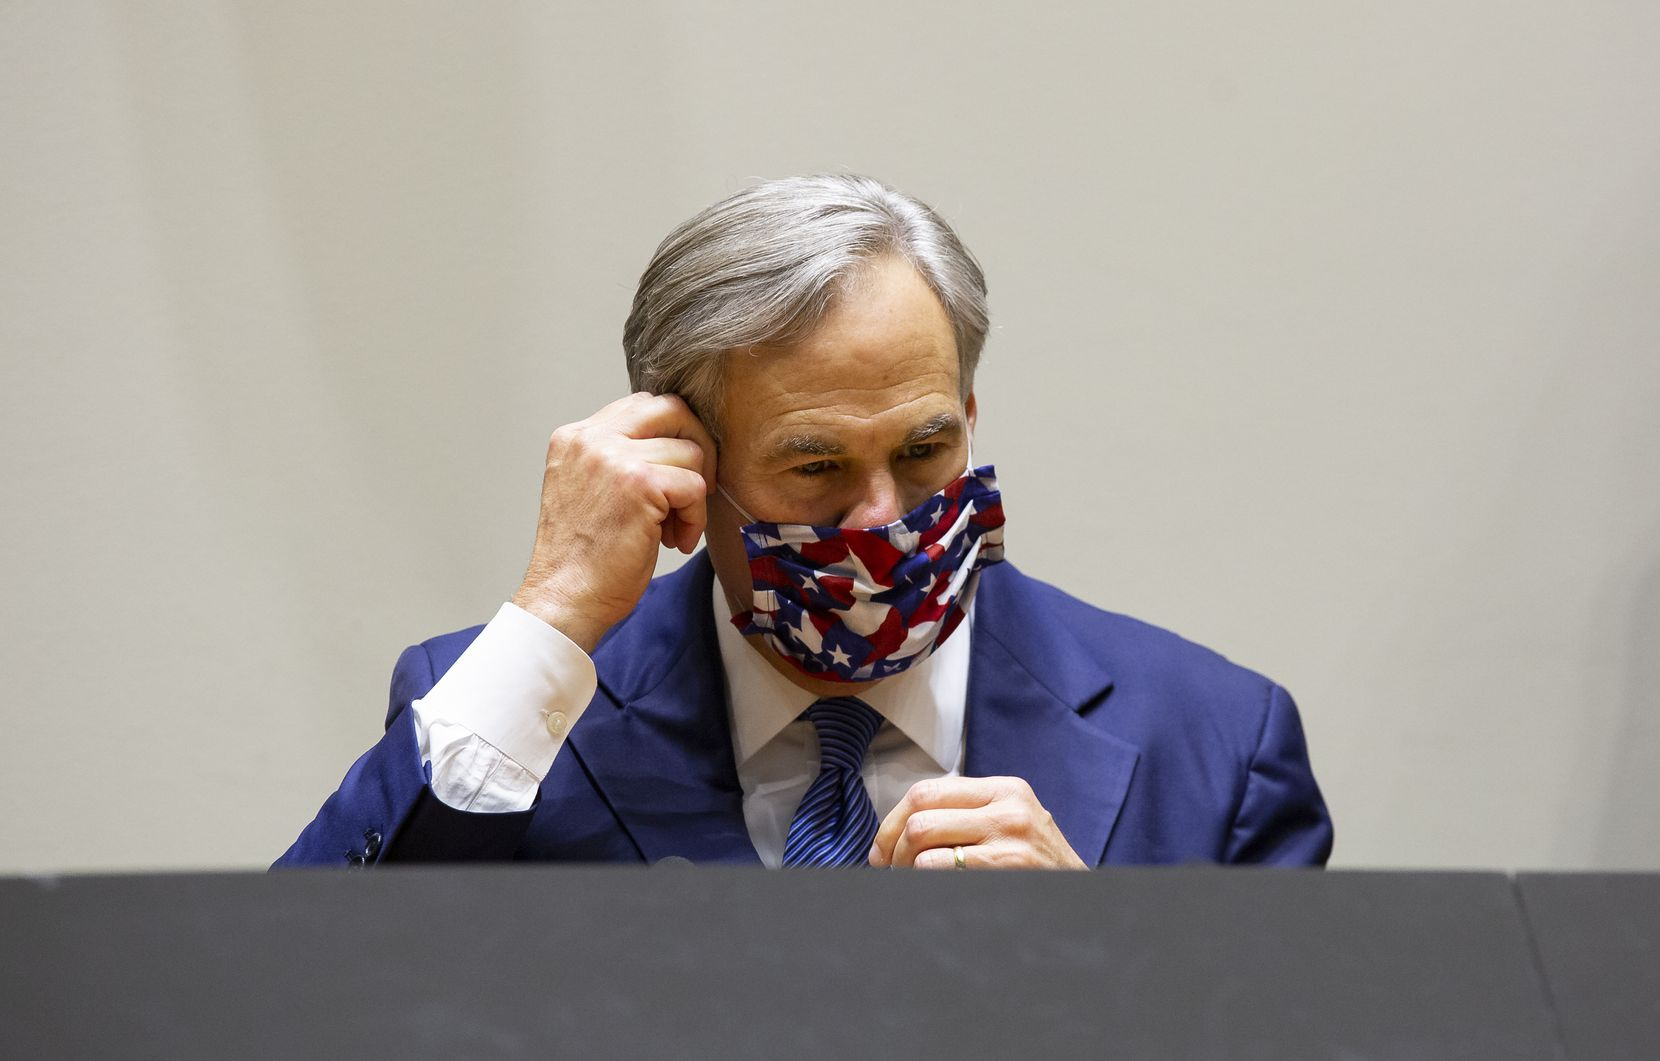 Governor Greg Abbott takes off his mask before speaking at a press conference on protest violencewith local officials on Tuesday, June 2, 2020 at City Hall in Dallas.